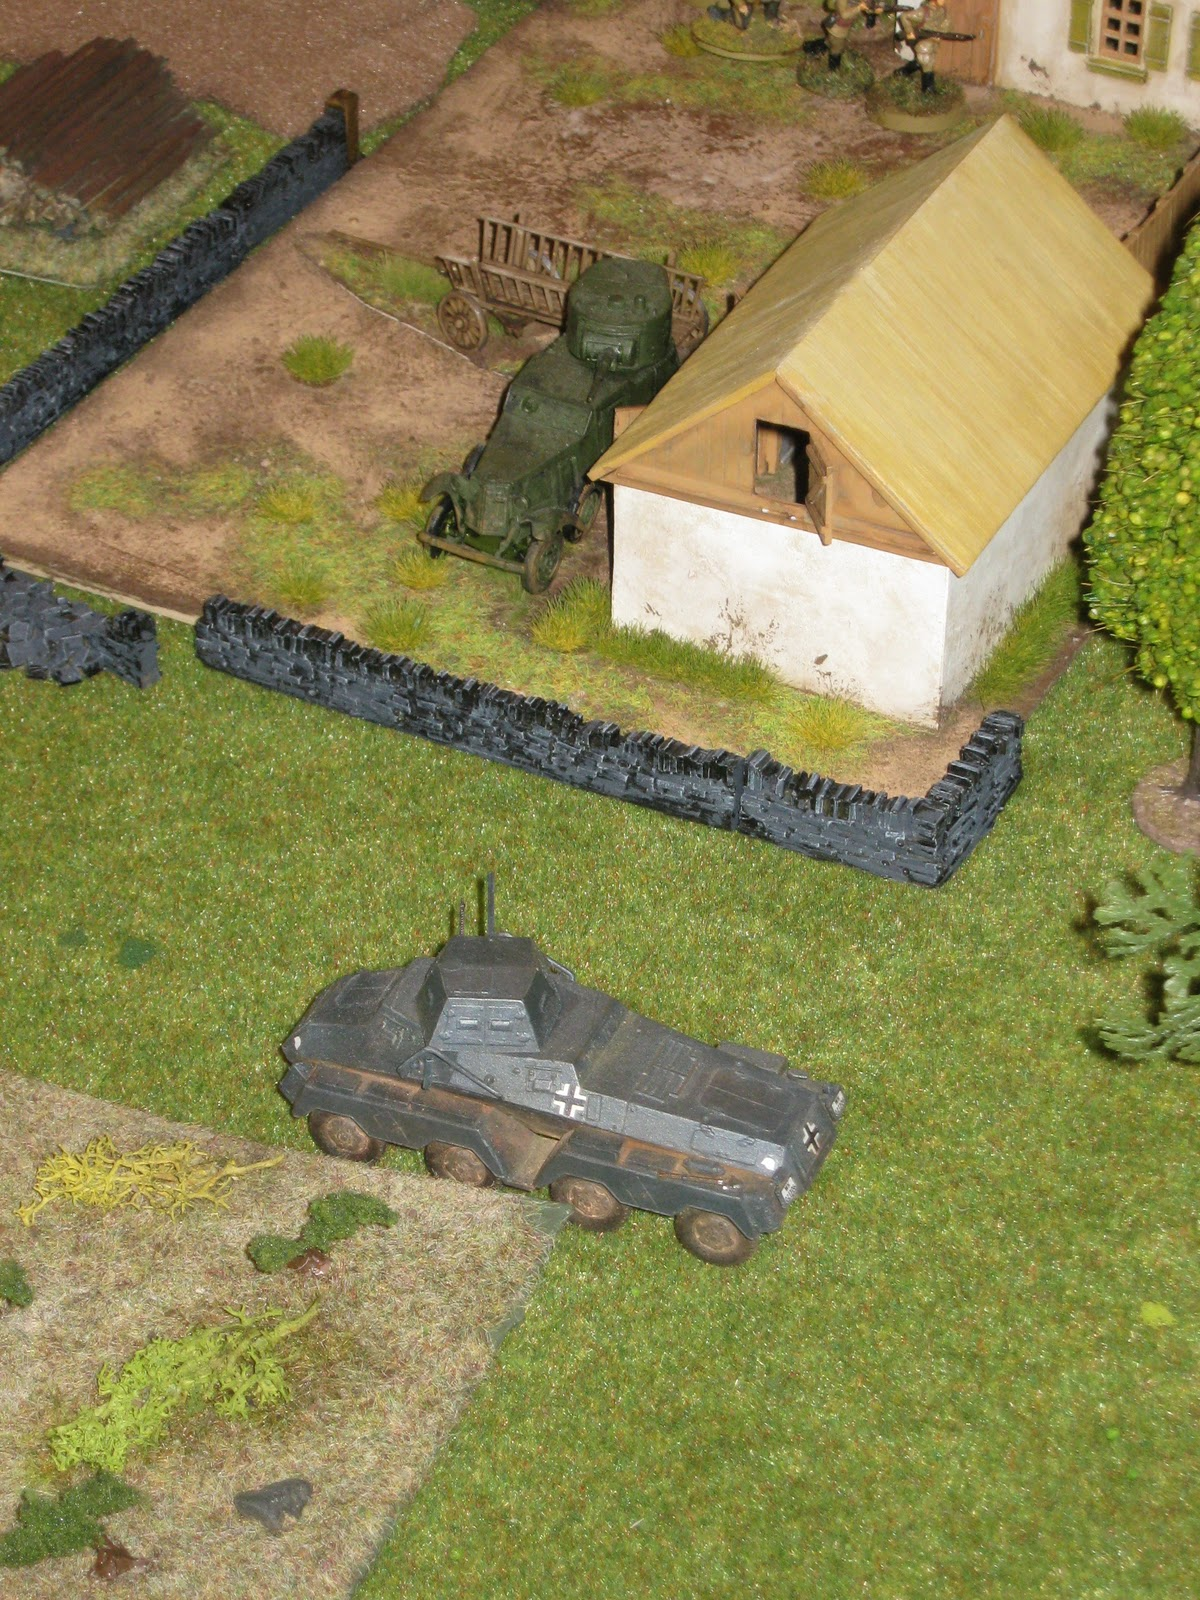 The heavy armored car continues, until…